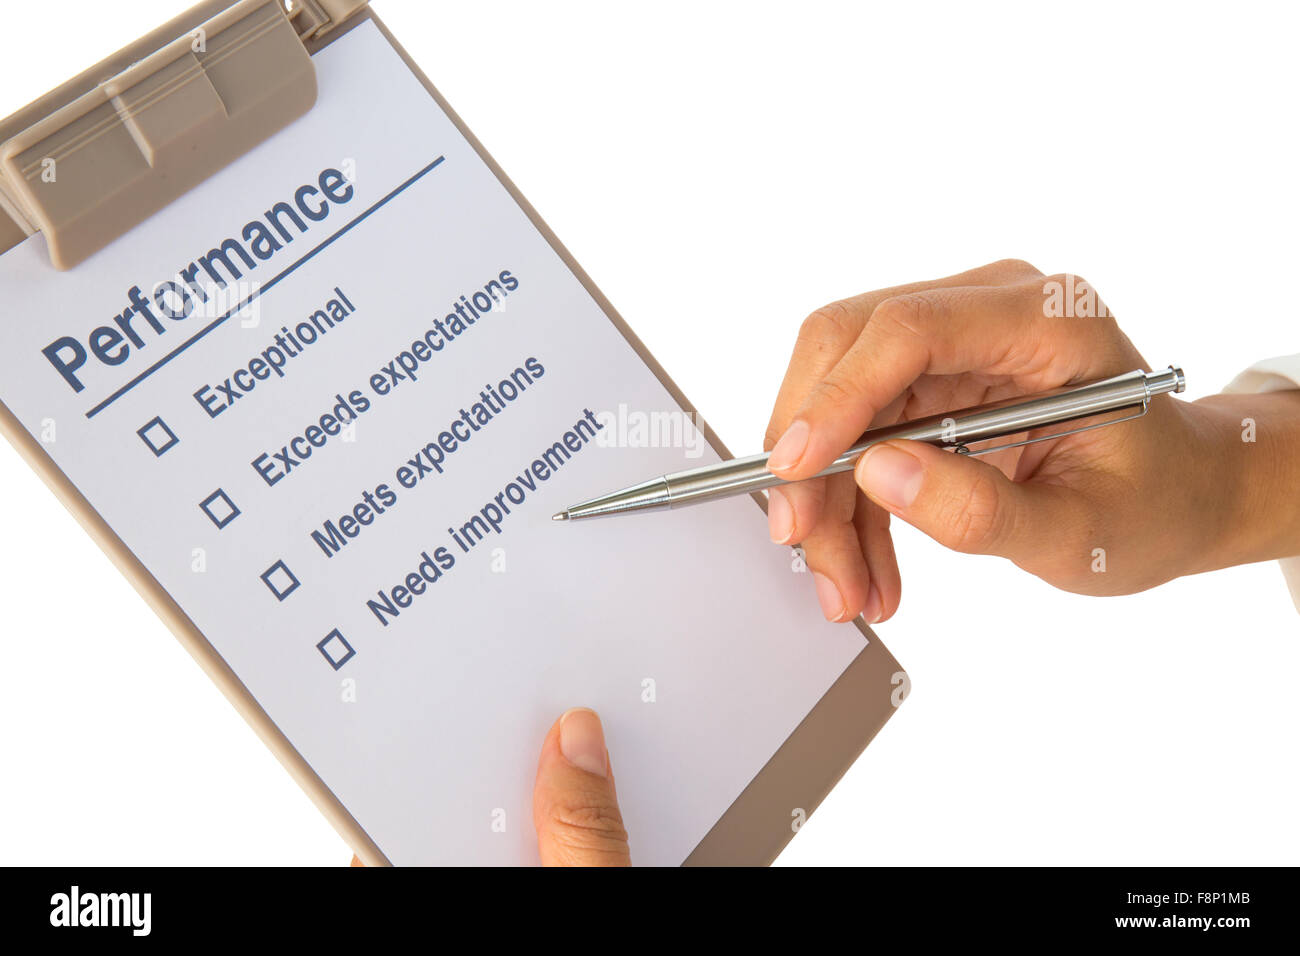 Woman's hand fills out performance checklist on white - Stock Image